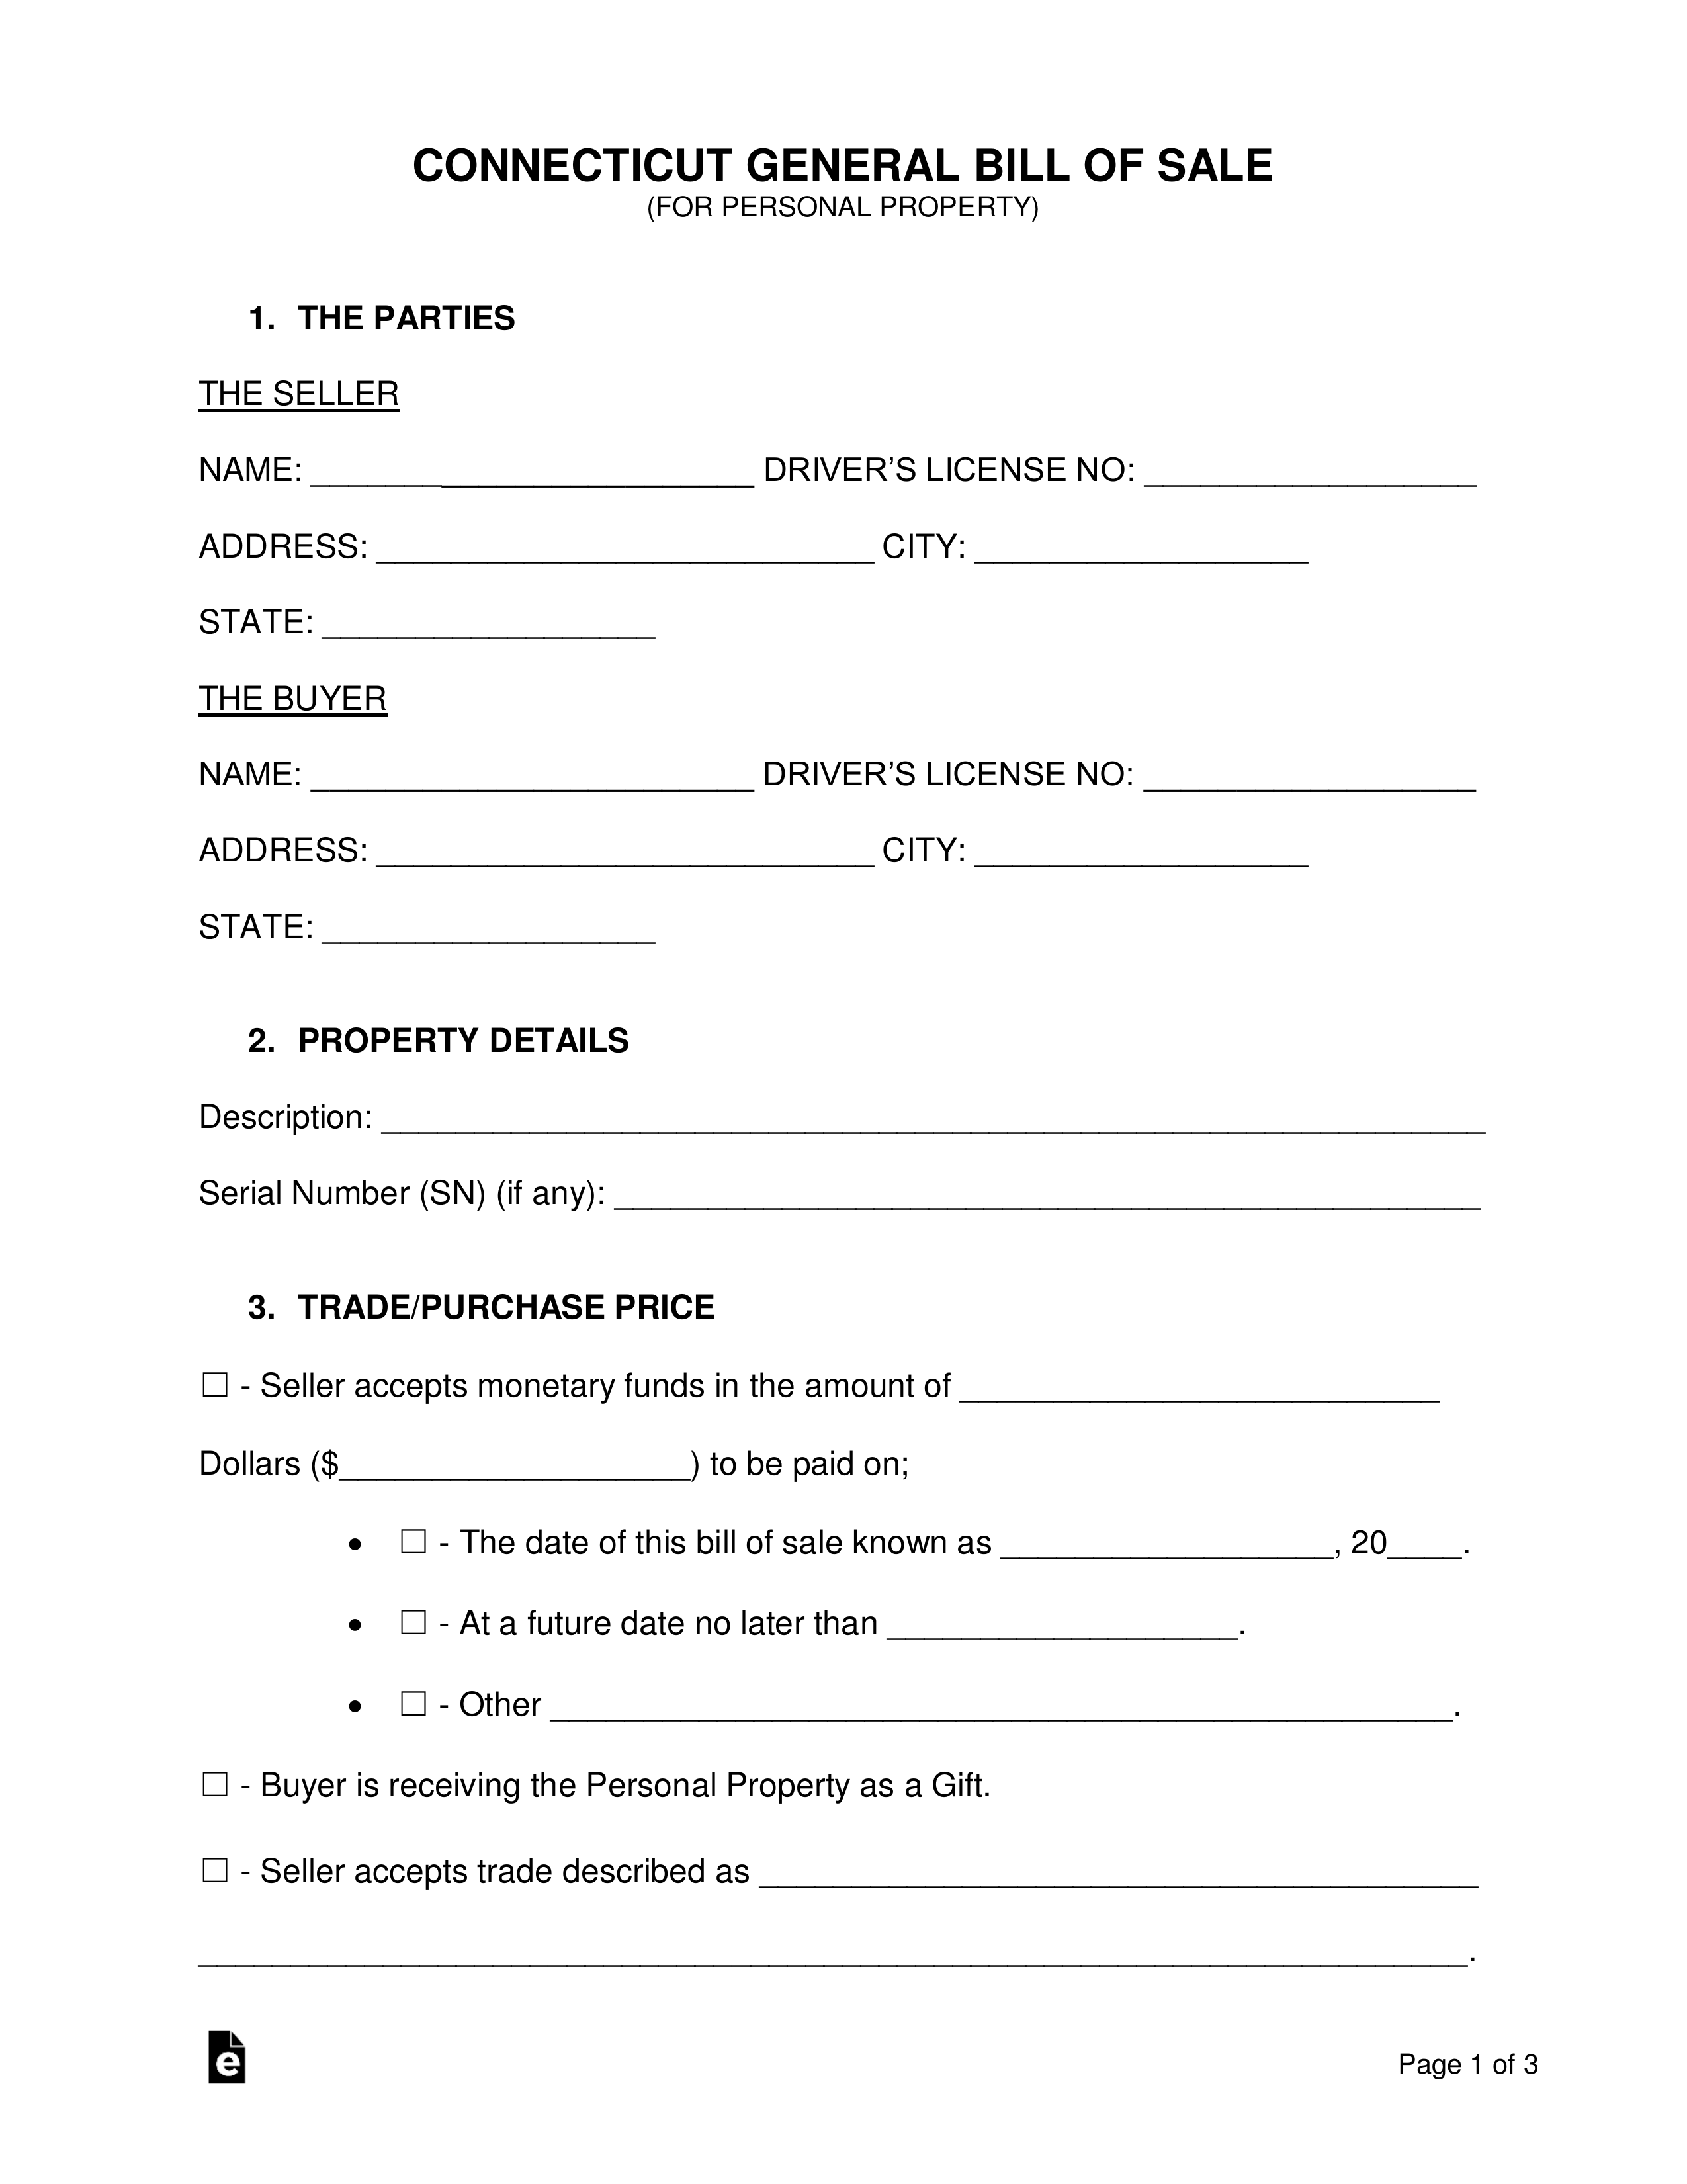 Free Connecticut General Bill Of Sale Form - Word   Pdf